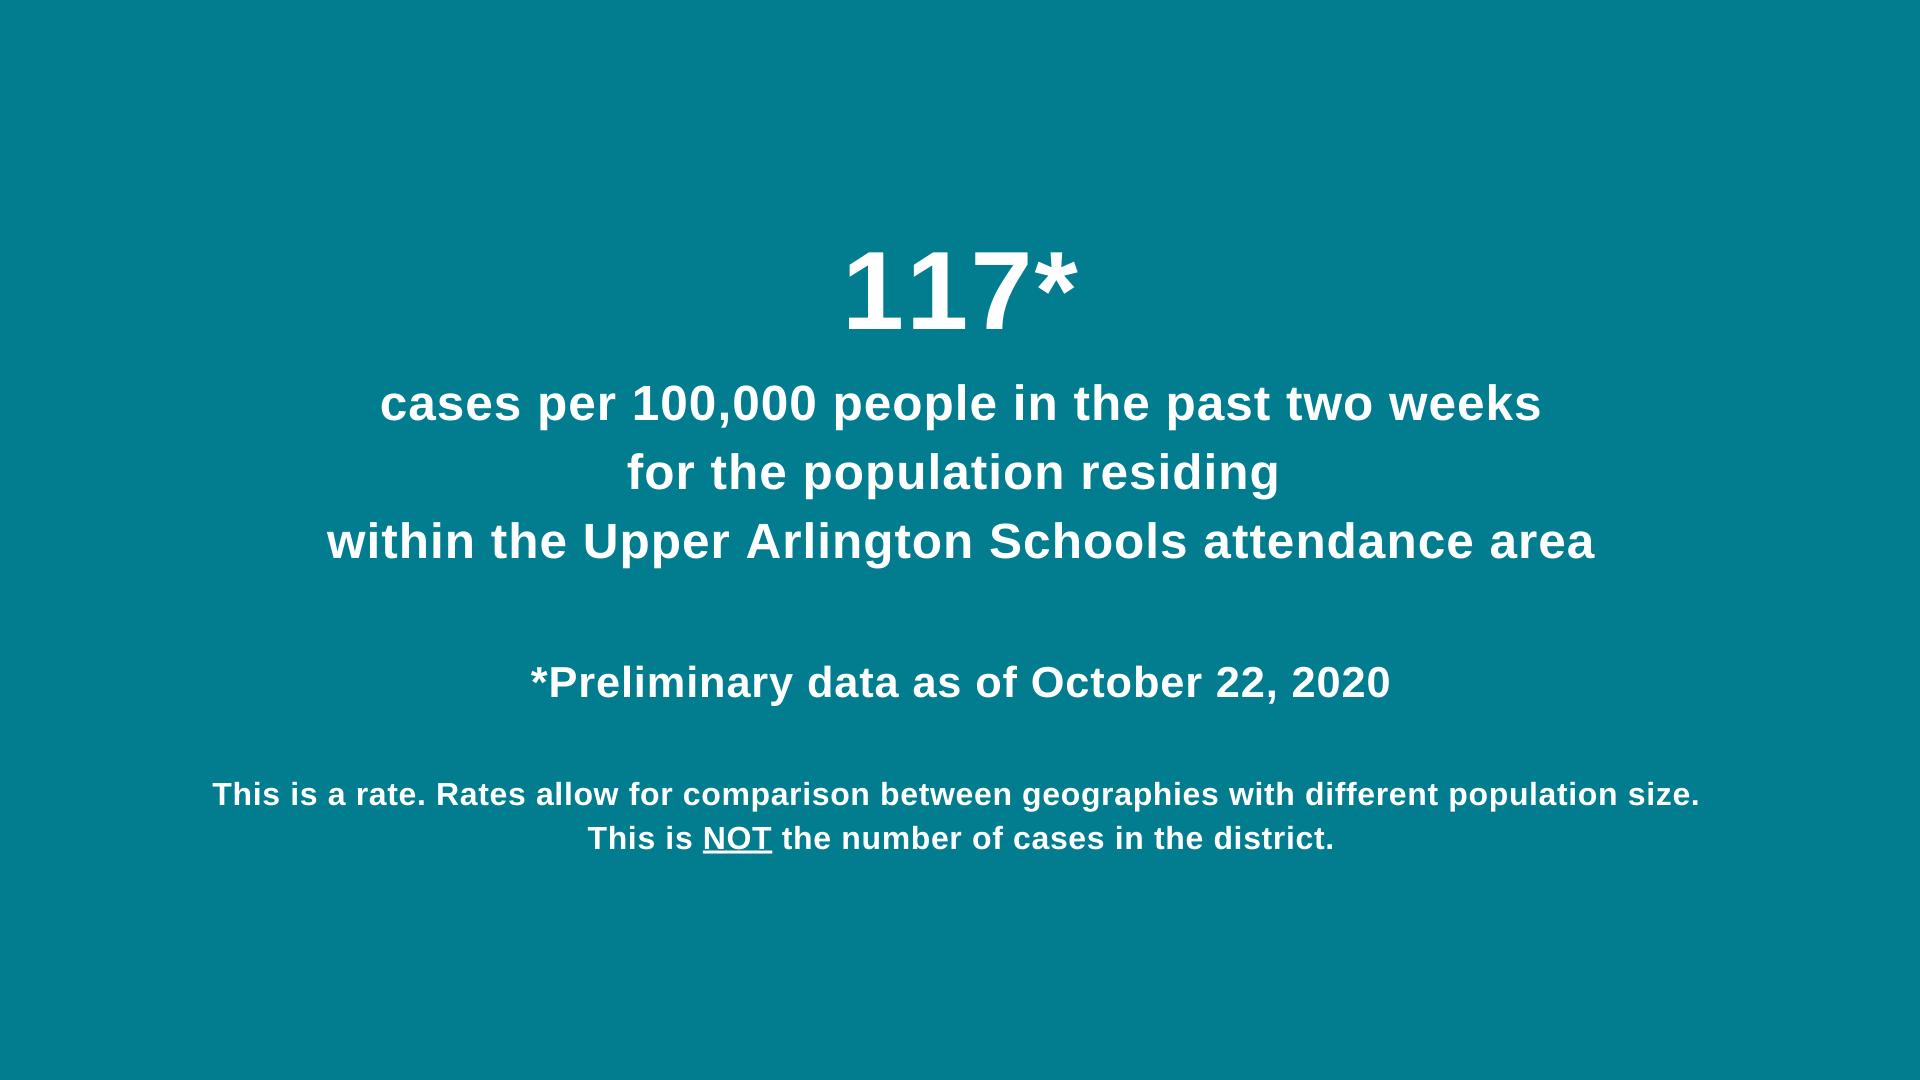 Case rate graphic for Upper Arlington attendance area - 117 per 100,000 people in the past two weeks